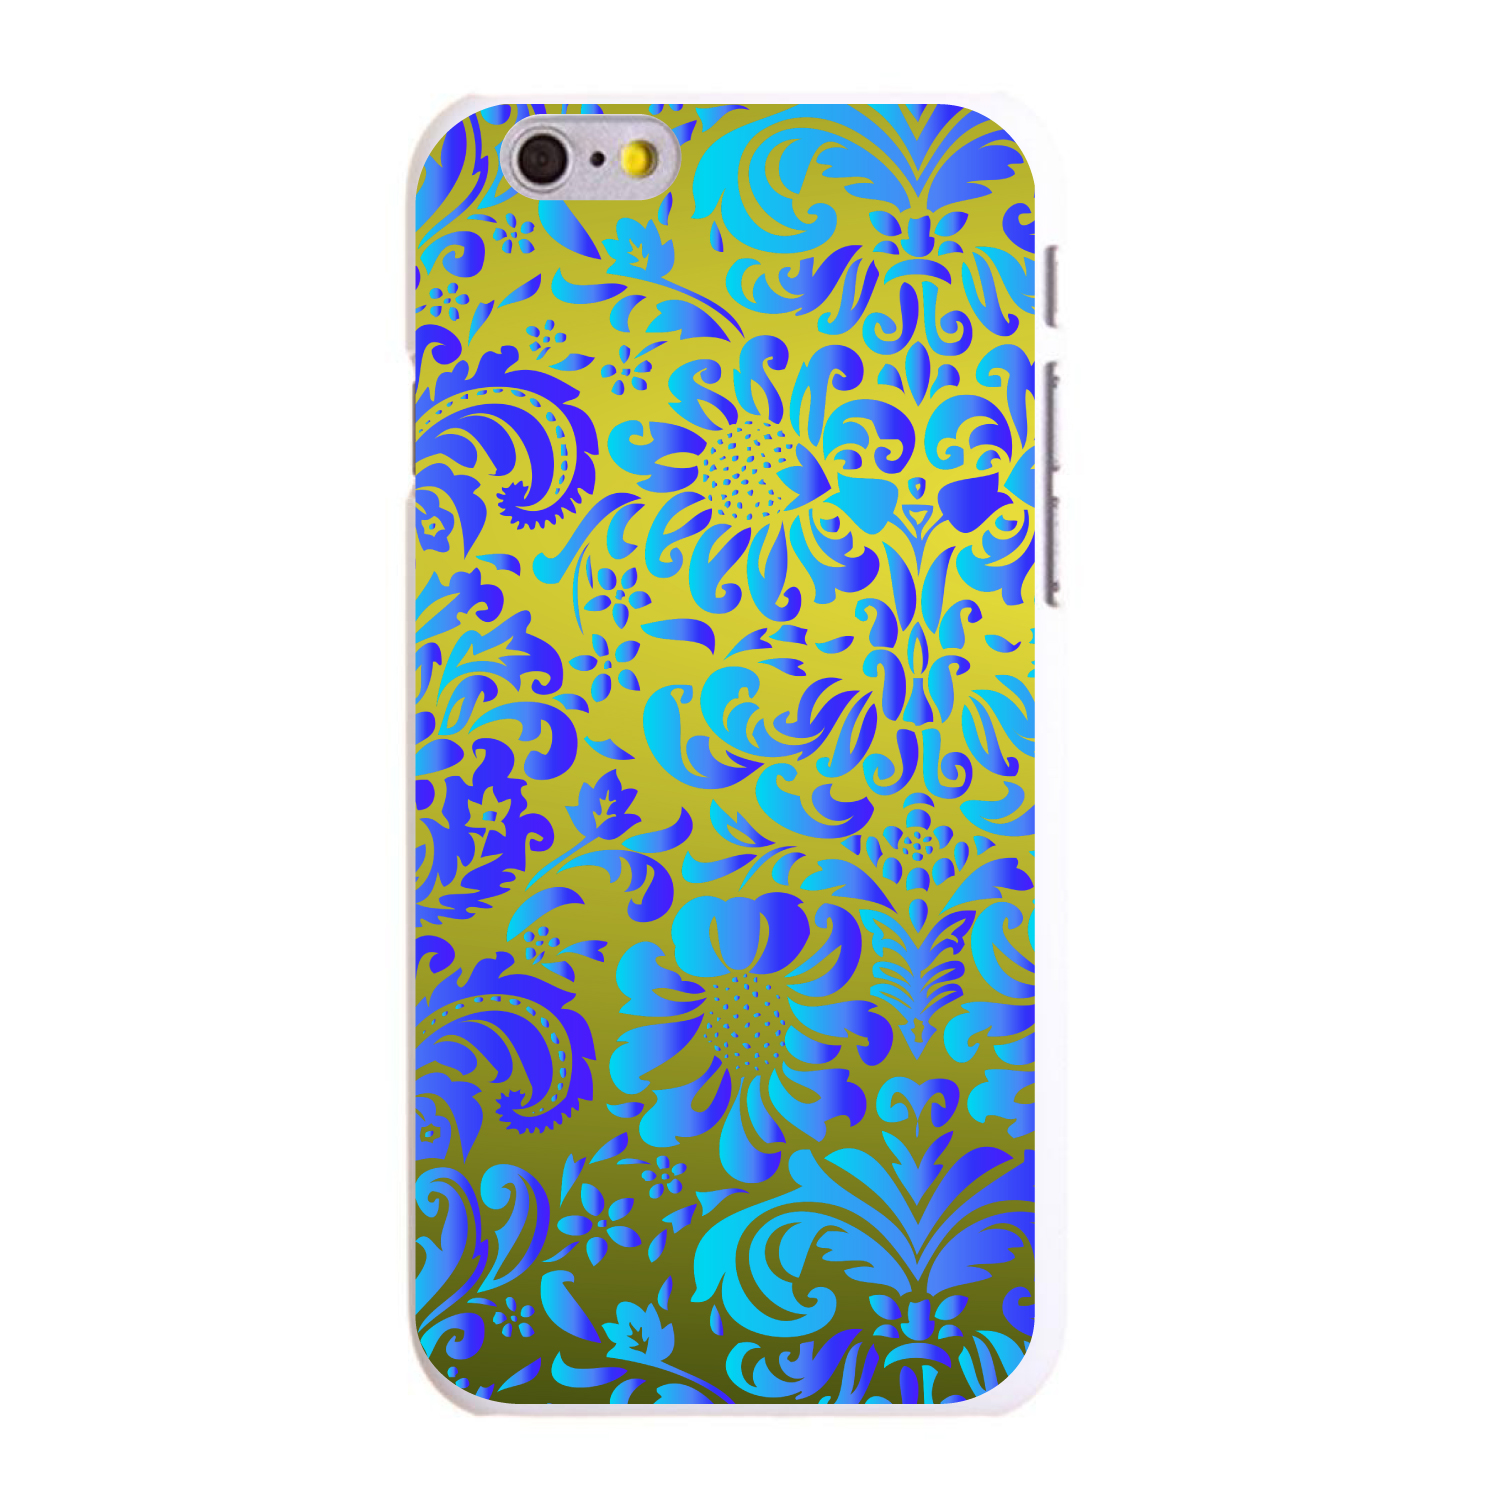 """CUSTOM White Hard Plastic Snap-On Case for Apple iPhone 6 PLUS / 6S PLUS (5.5"""" Screen) - Green Blue Teal Floral Pattern"""